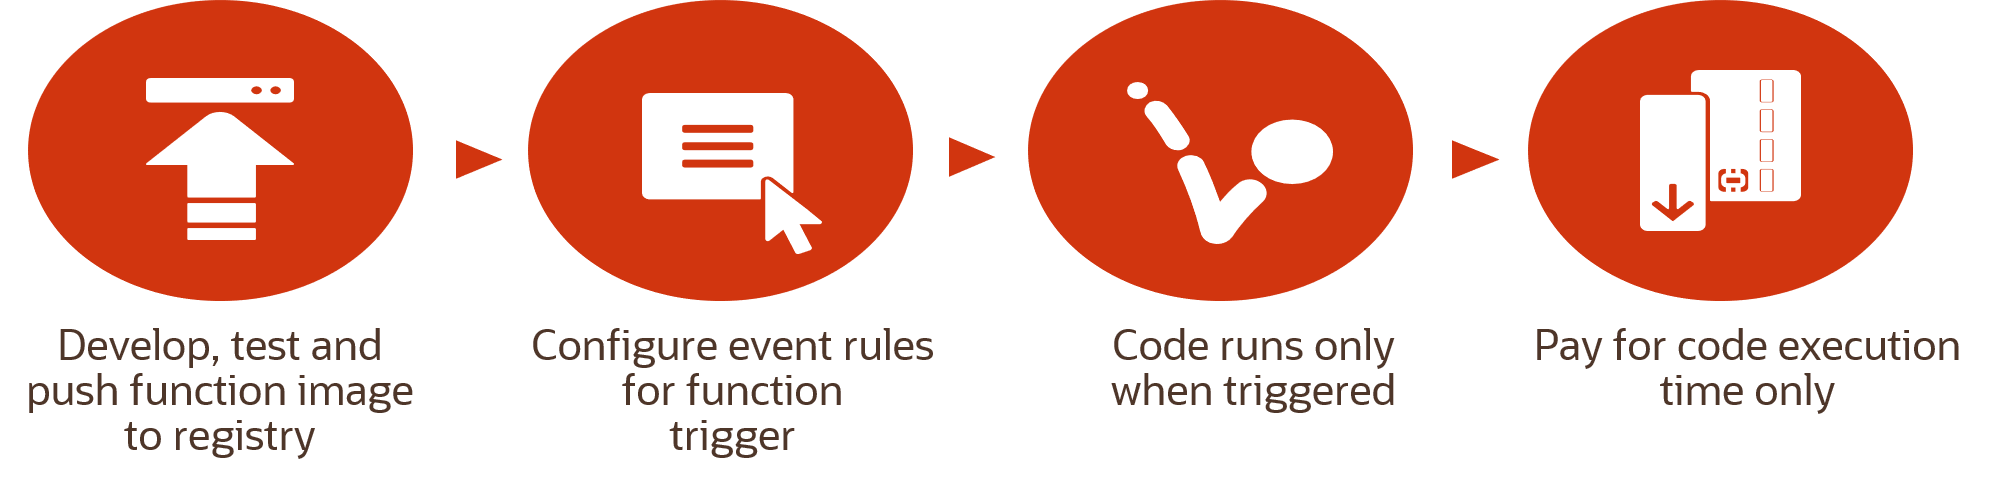 Diagram that shows four high-level steps for setting up and configuring functions and events.